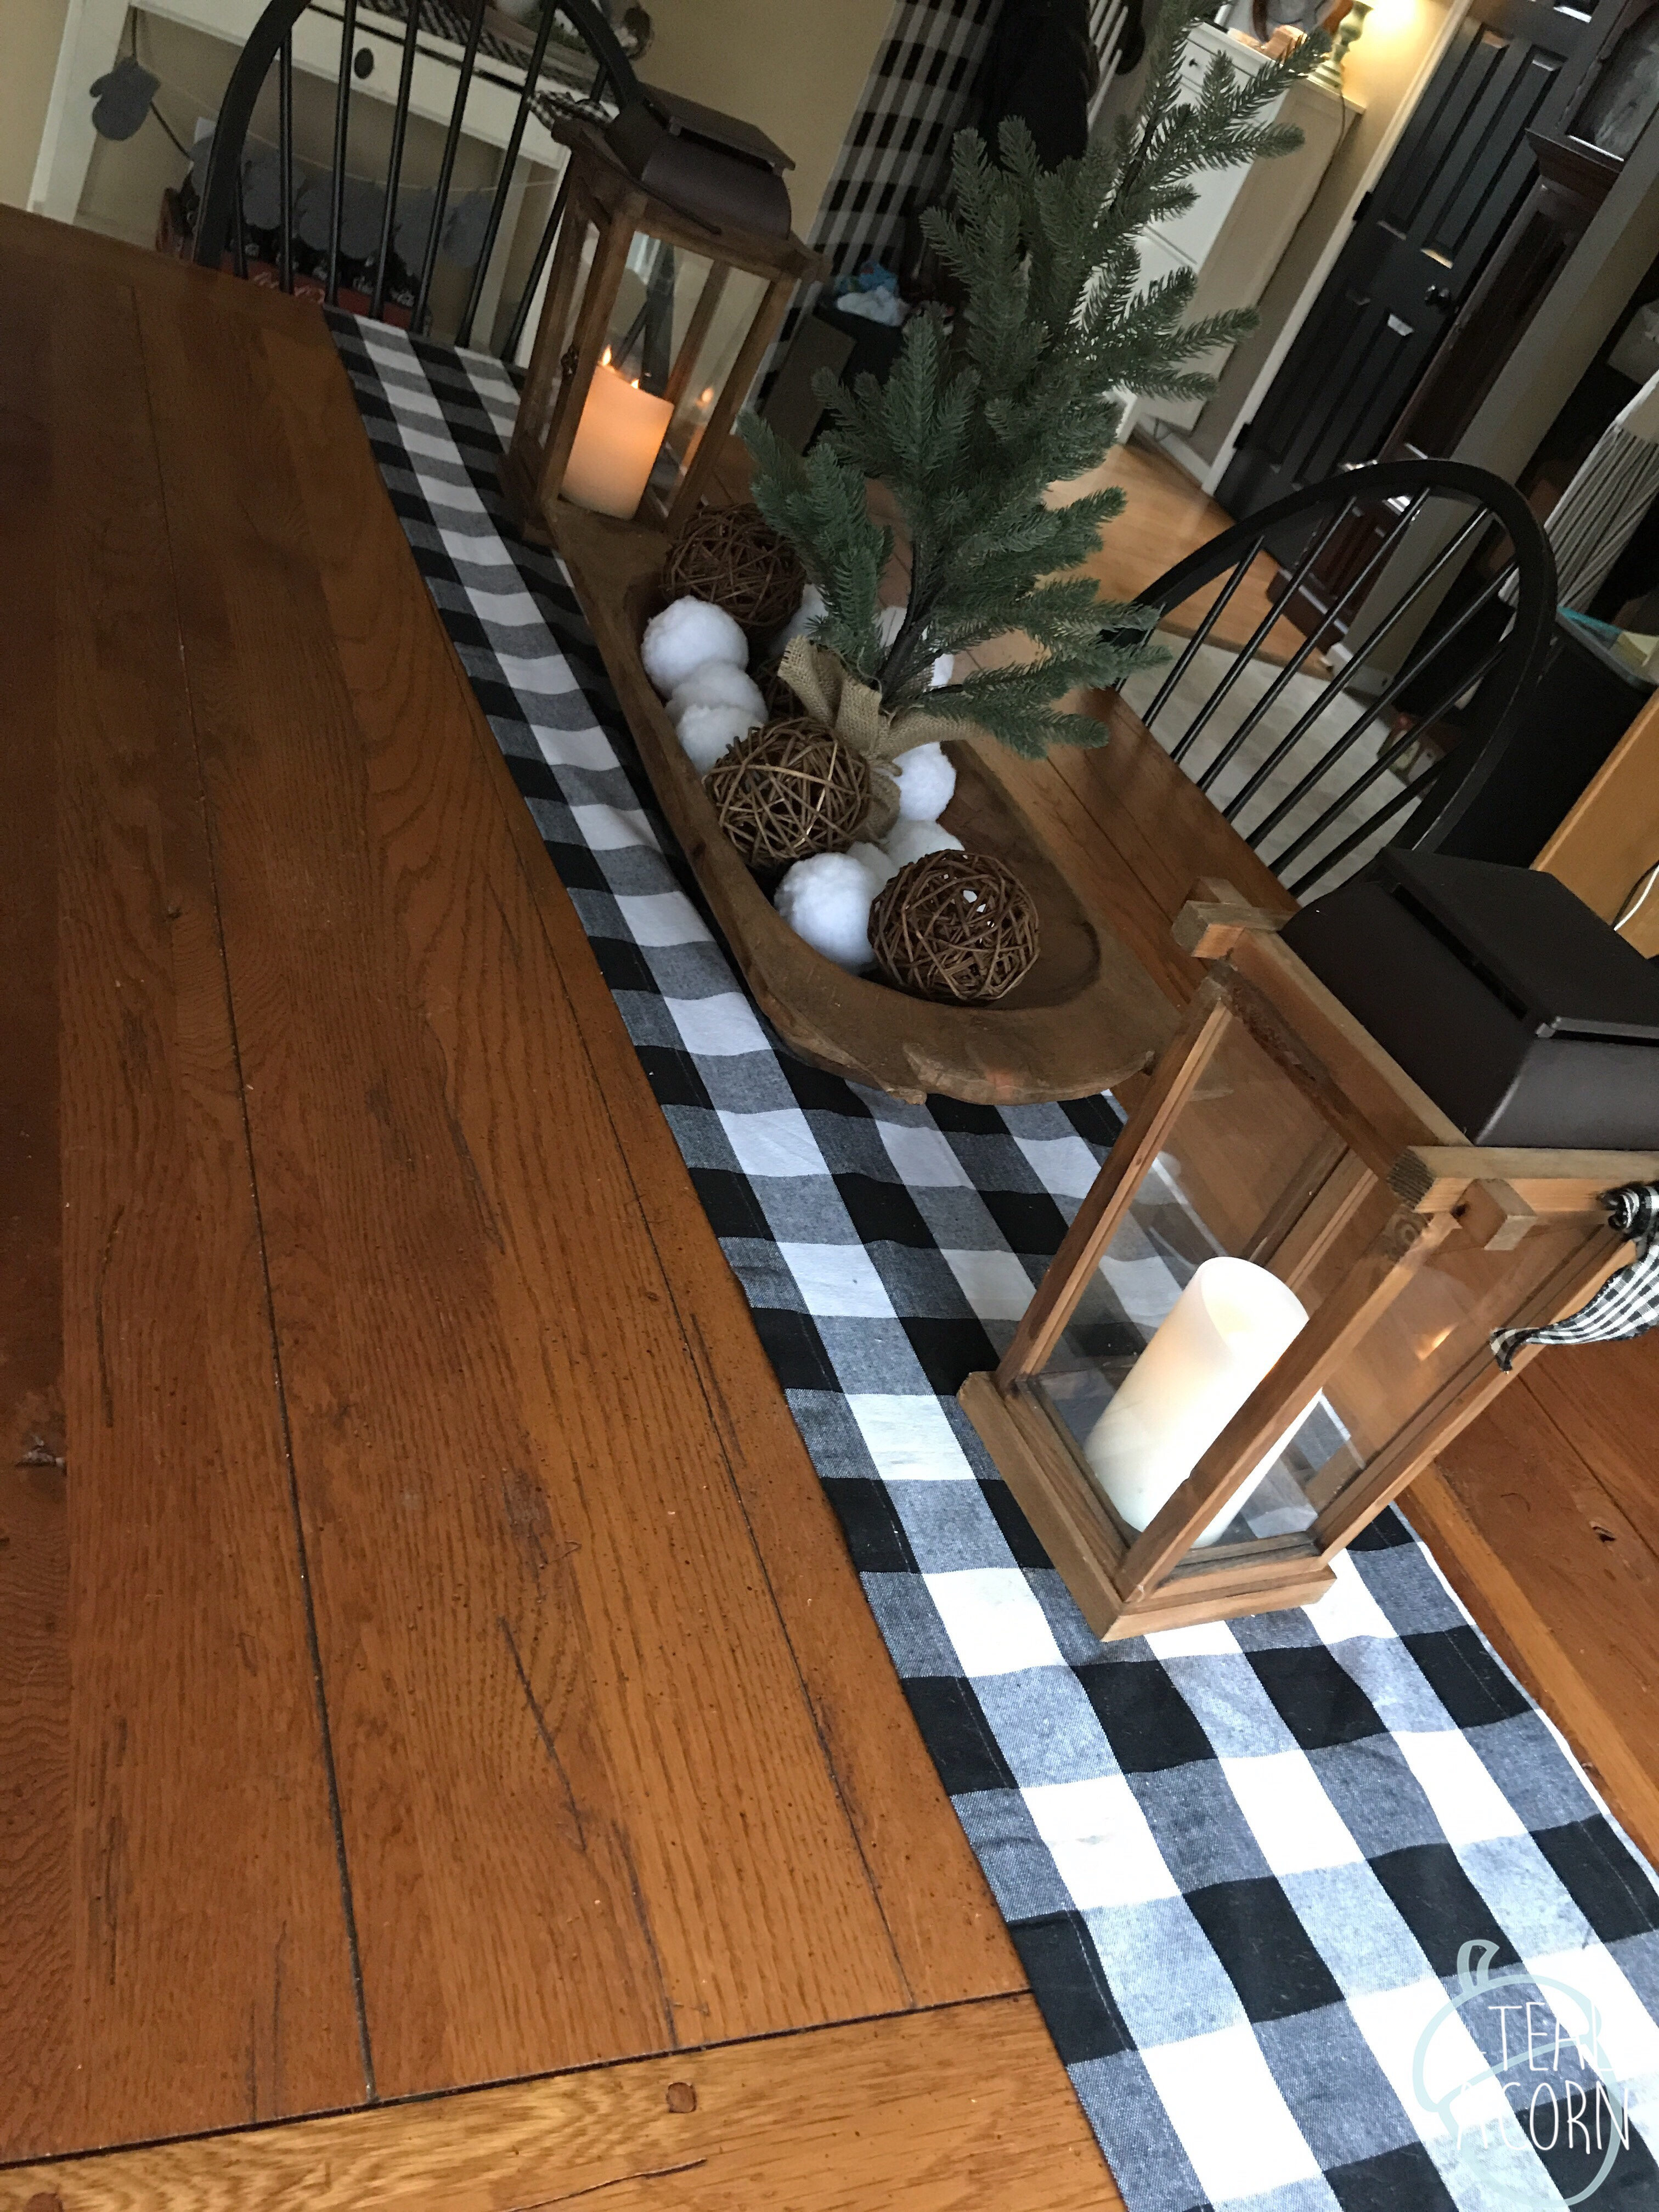 Large Farmhouse table with buffalo check runner, dough bowl, winter centerpiece, and wooden lanterns.  Ikea Hemnes Shoe cabinet iand diy buffalo check plaid accent wall n the background.